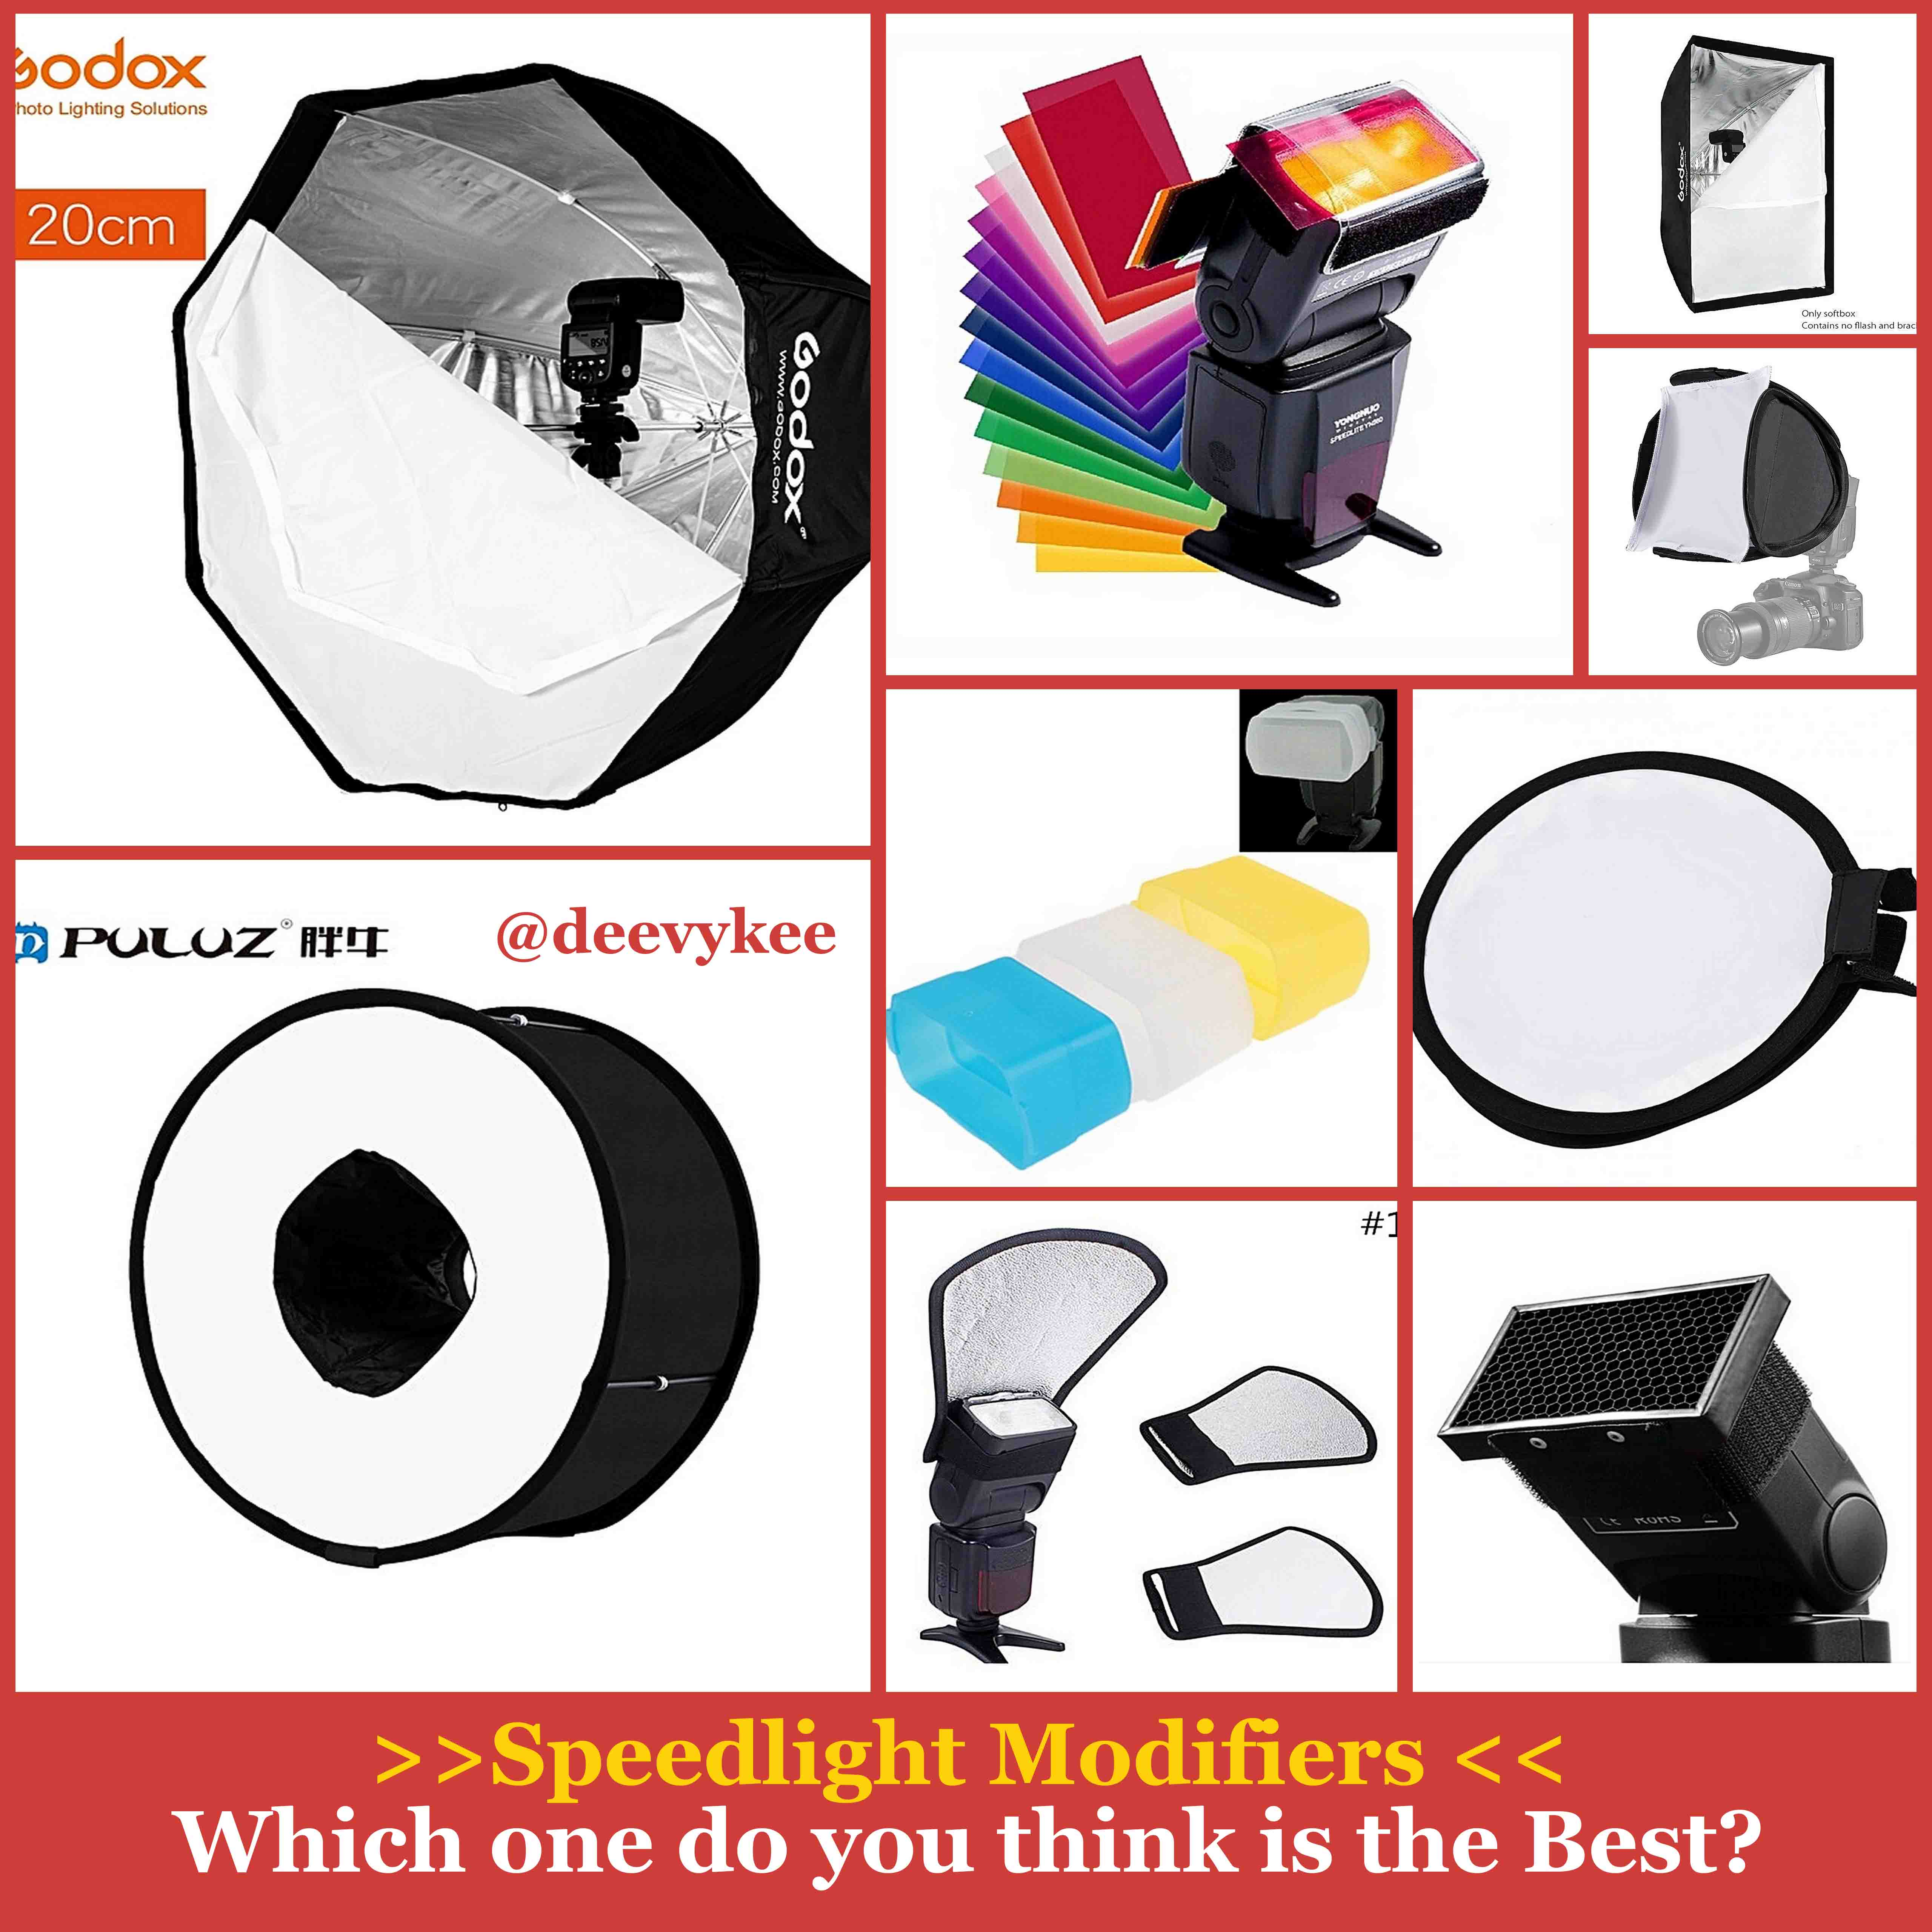 Top 10 Light Modifiers for your Godox, Canon or Nikon Speedlite you can buy online in Nigeria 1